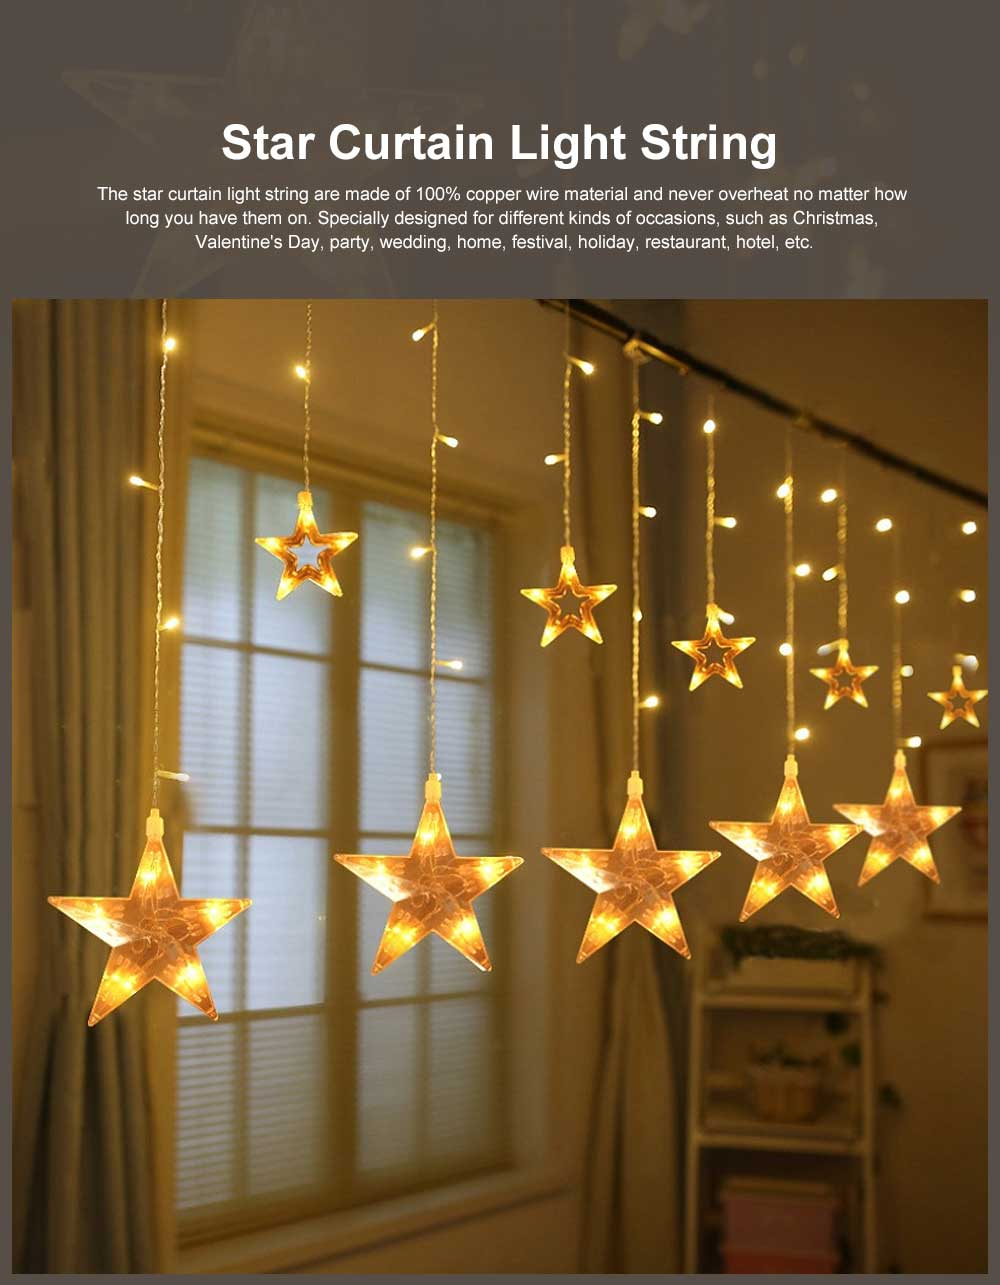 Star Curtain Light String Power Saving Waterproof IP65 LED Decor Lights 108 LED Star String Lights 8 Modes Stars Shaped String Lights with Remote for Indoor Outdoor 0